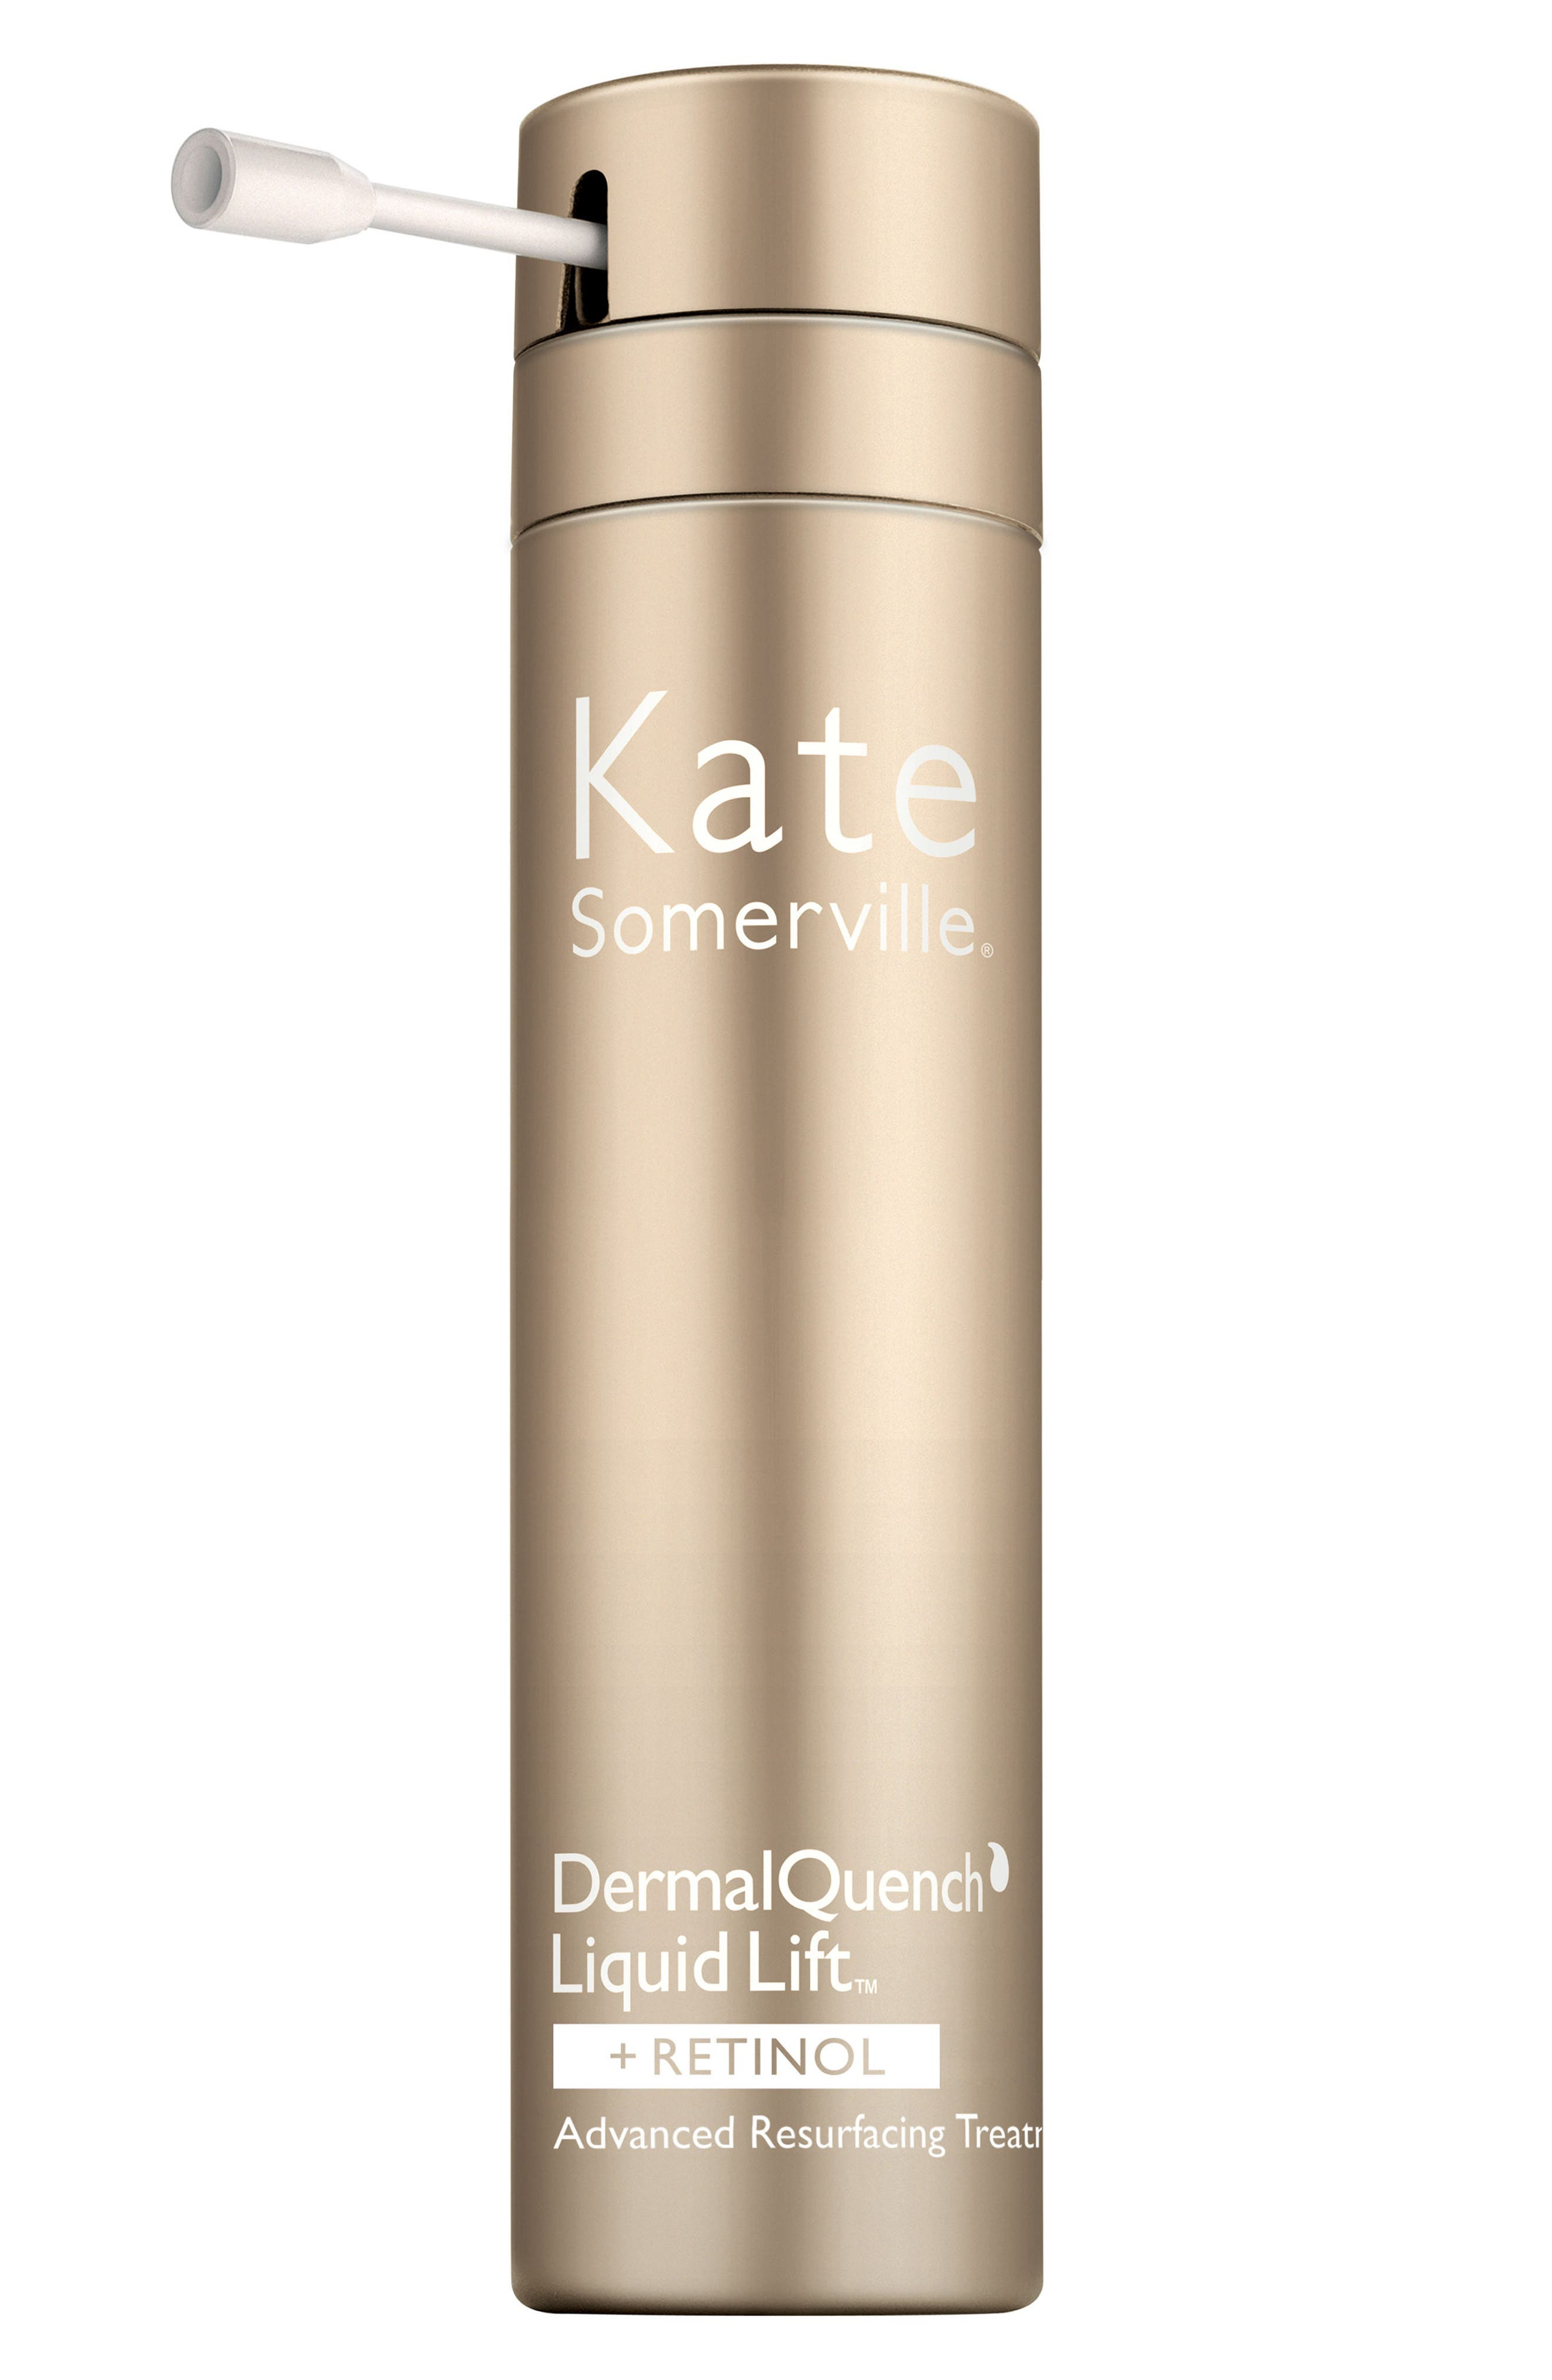 Kate Somerville® DermalQuench Liquid Lift™ + Retinol Advanced Resurfacing Treatment